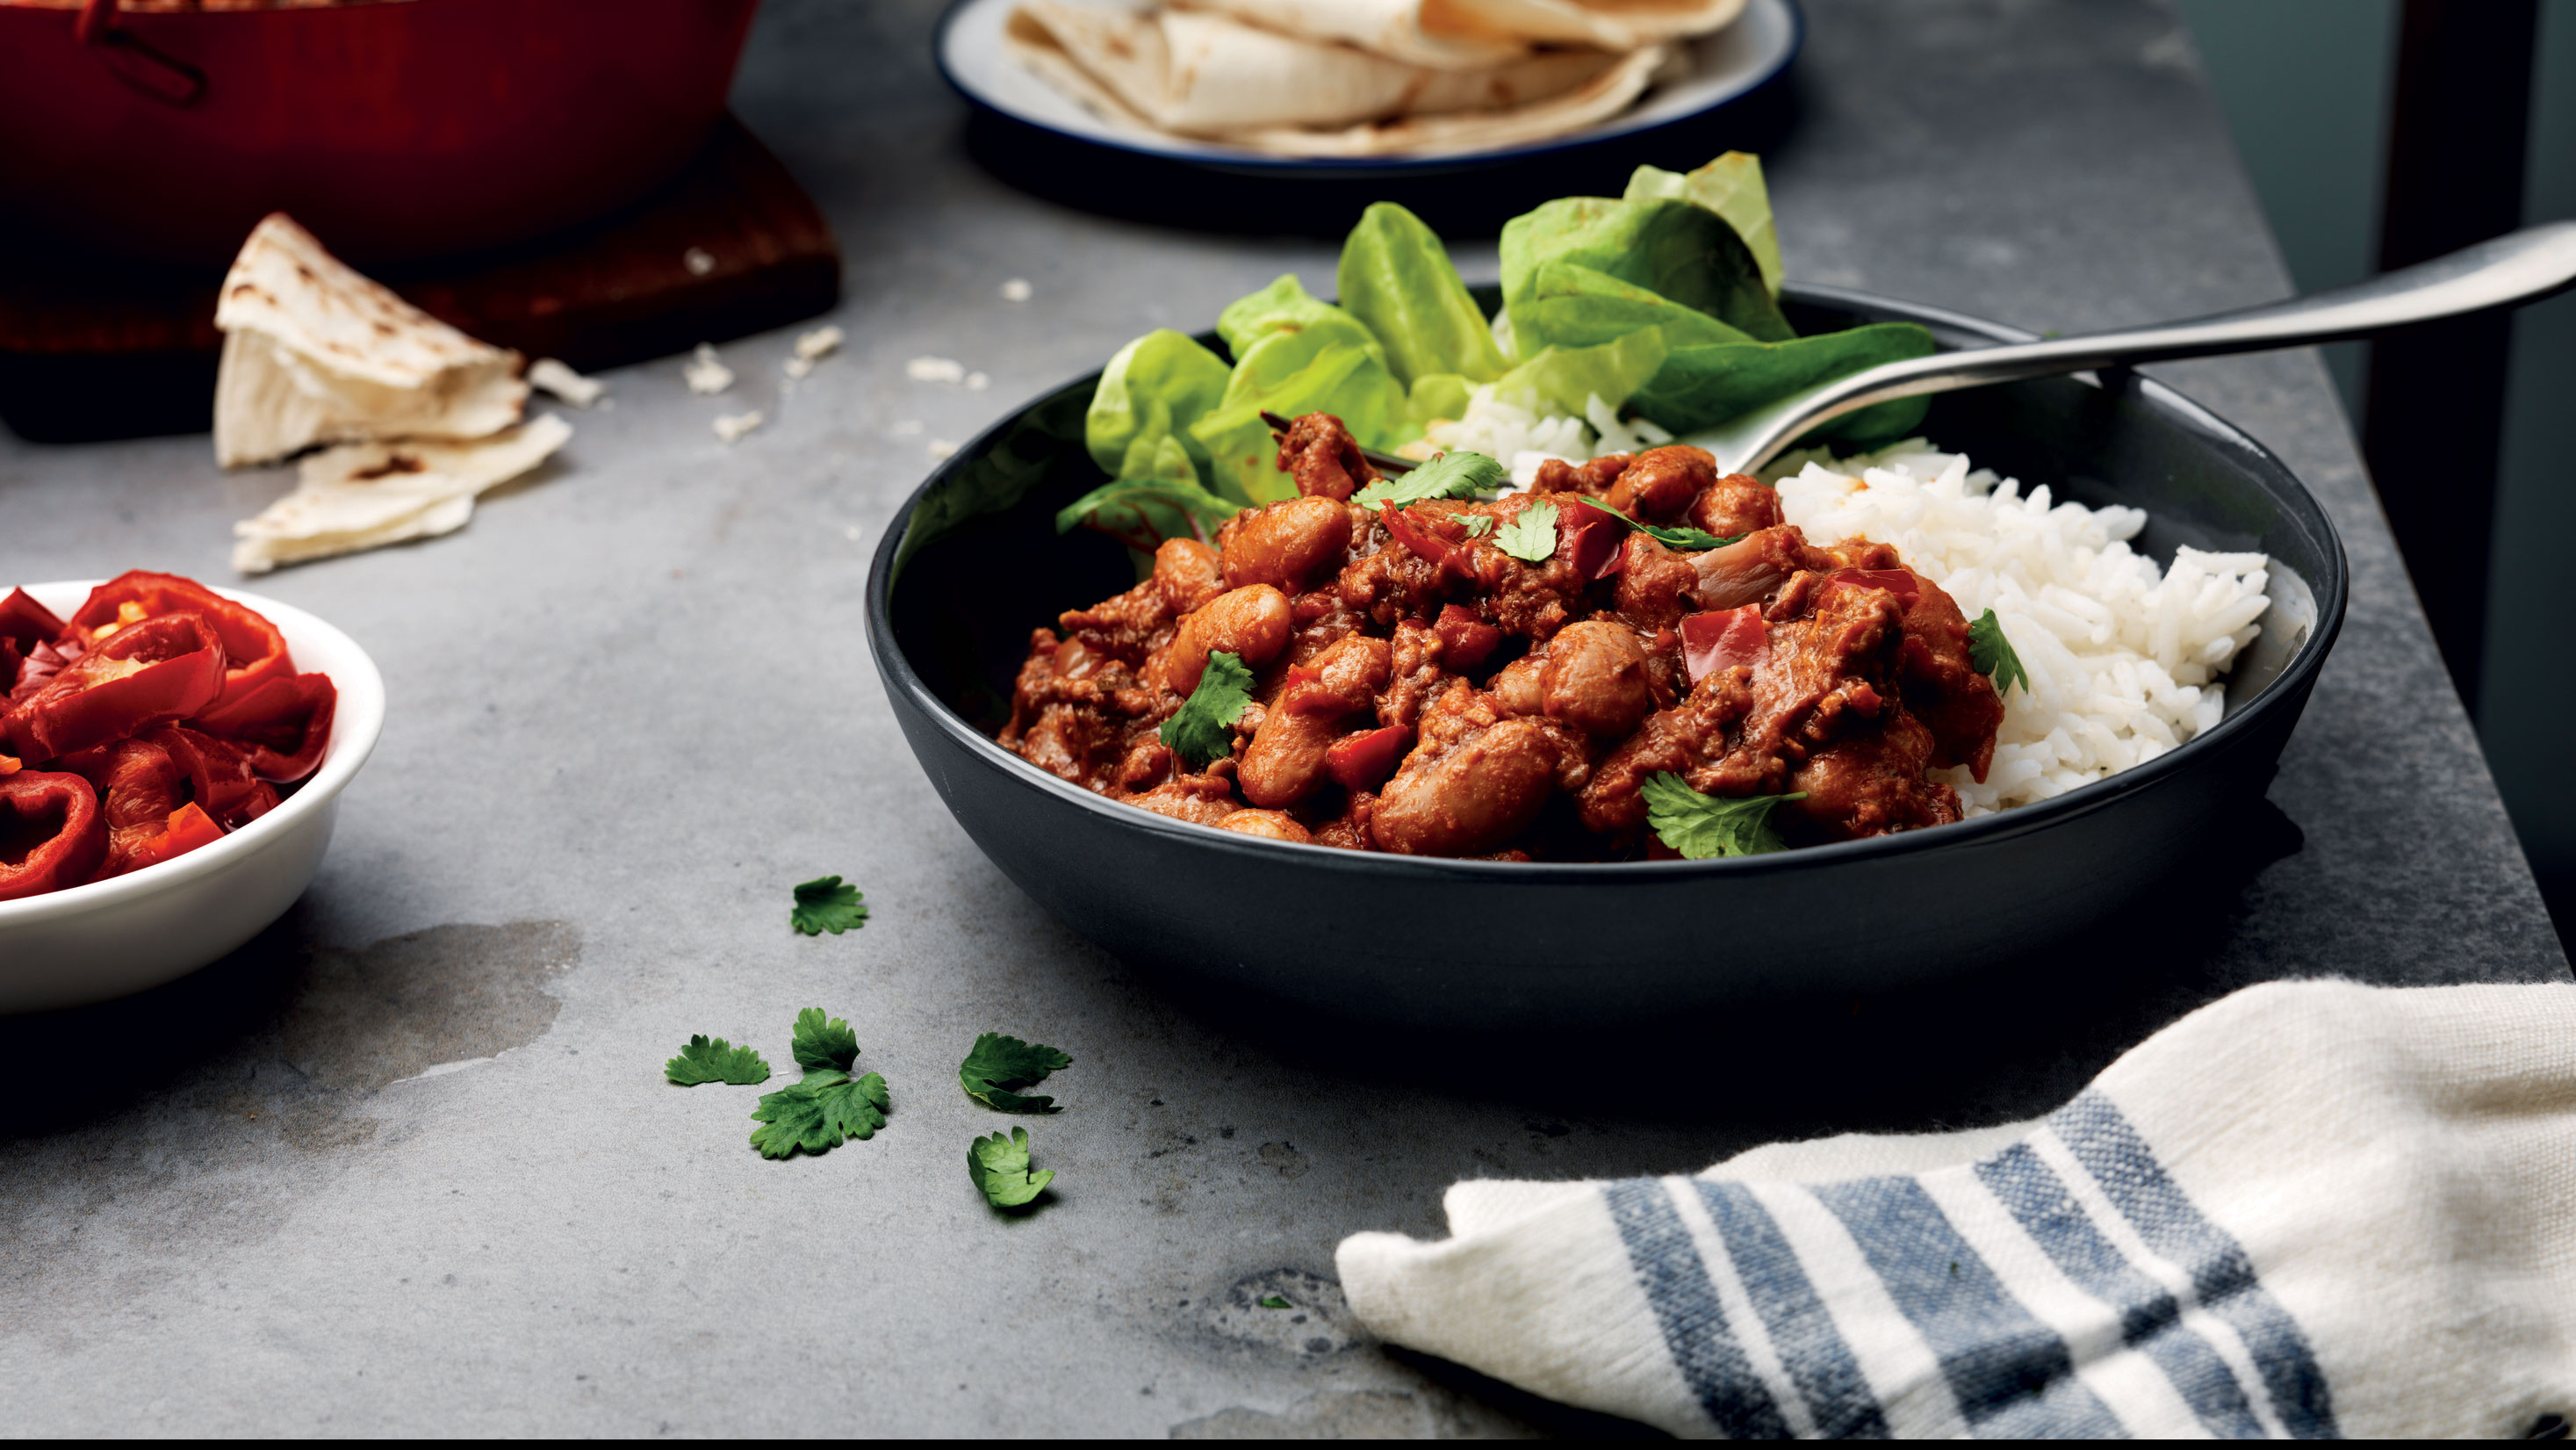 Chilli Con Carne with Smoked Paprika & Chipotle Seasoning and Sauce